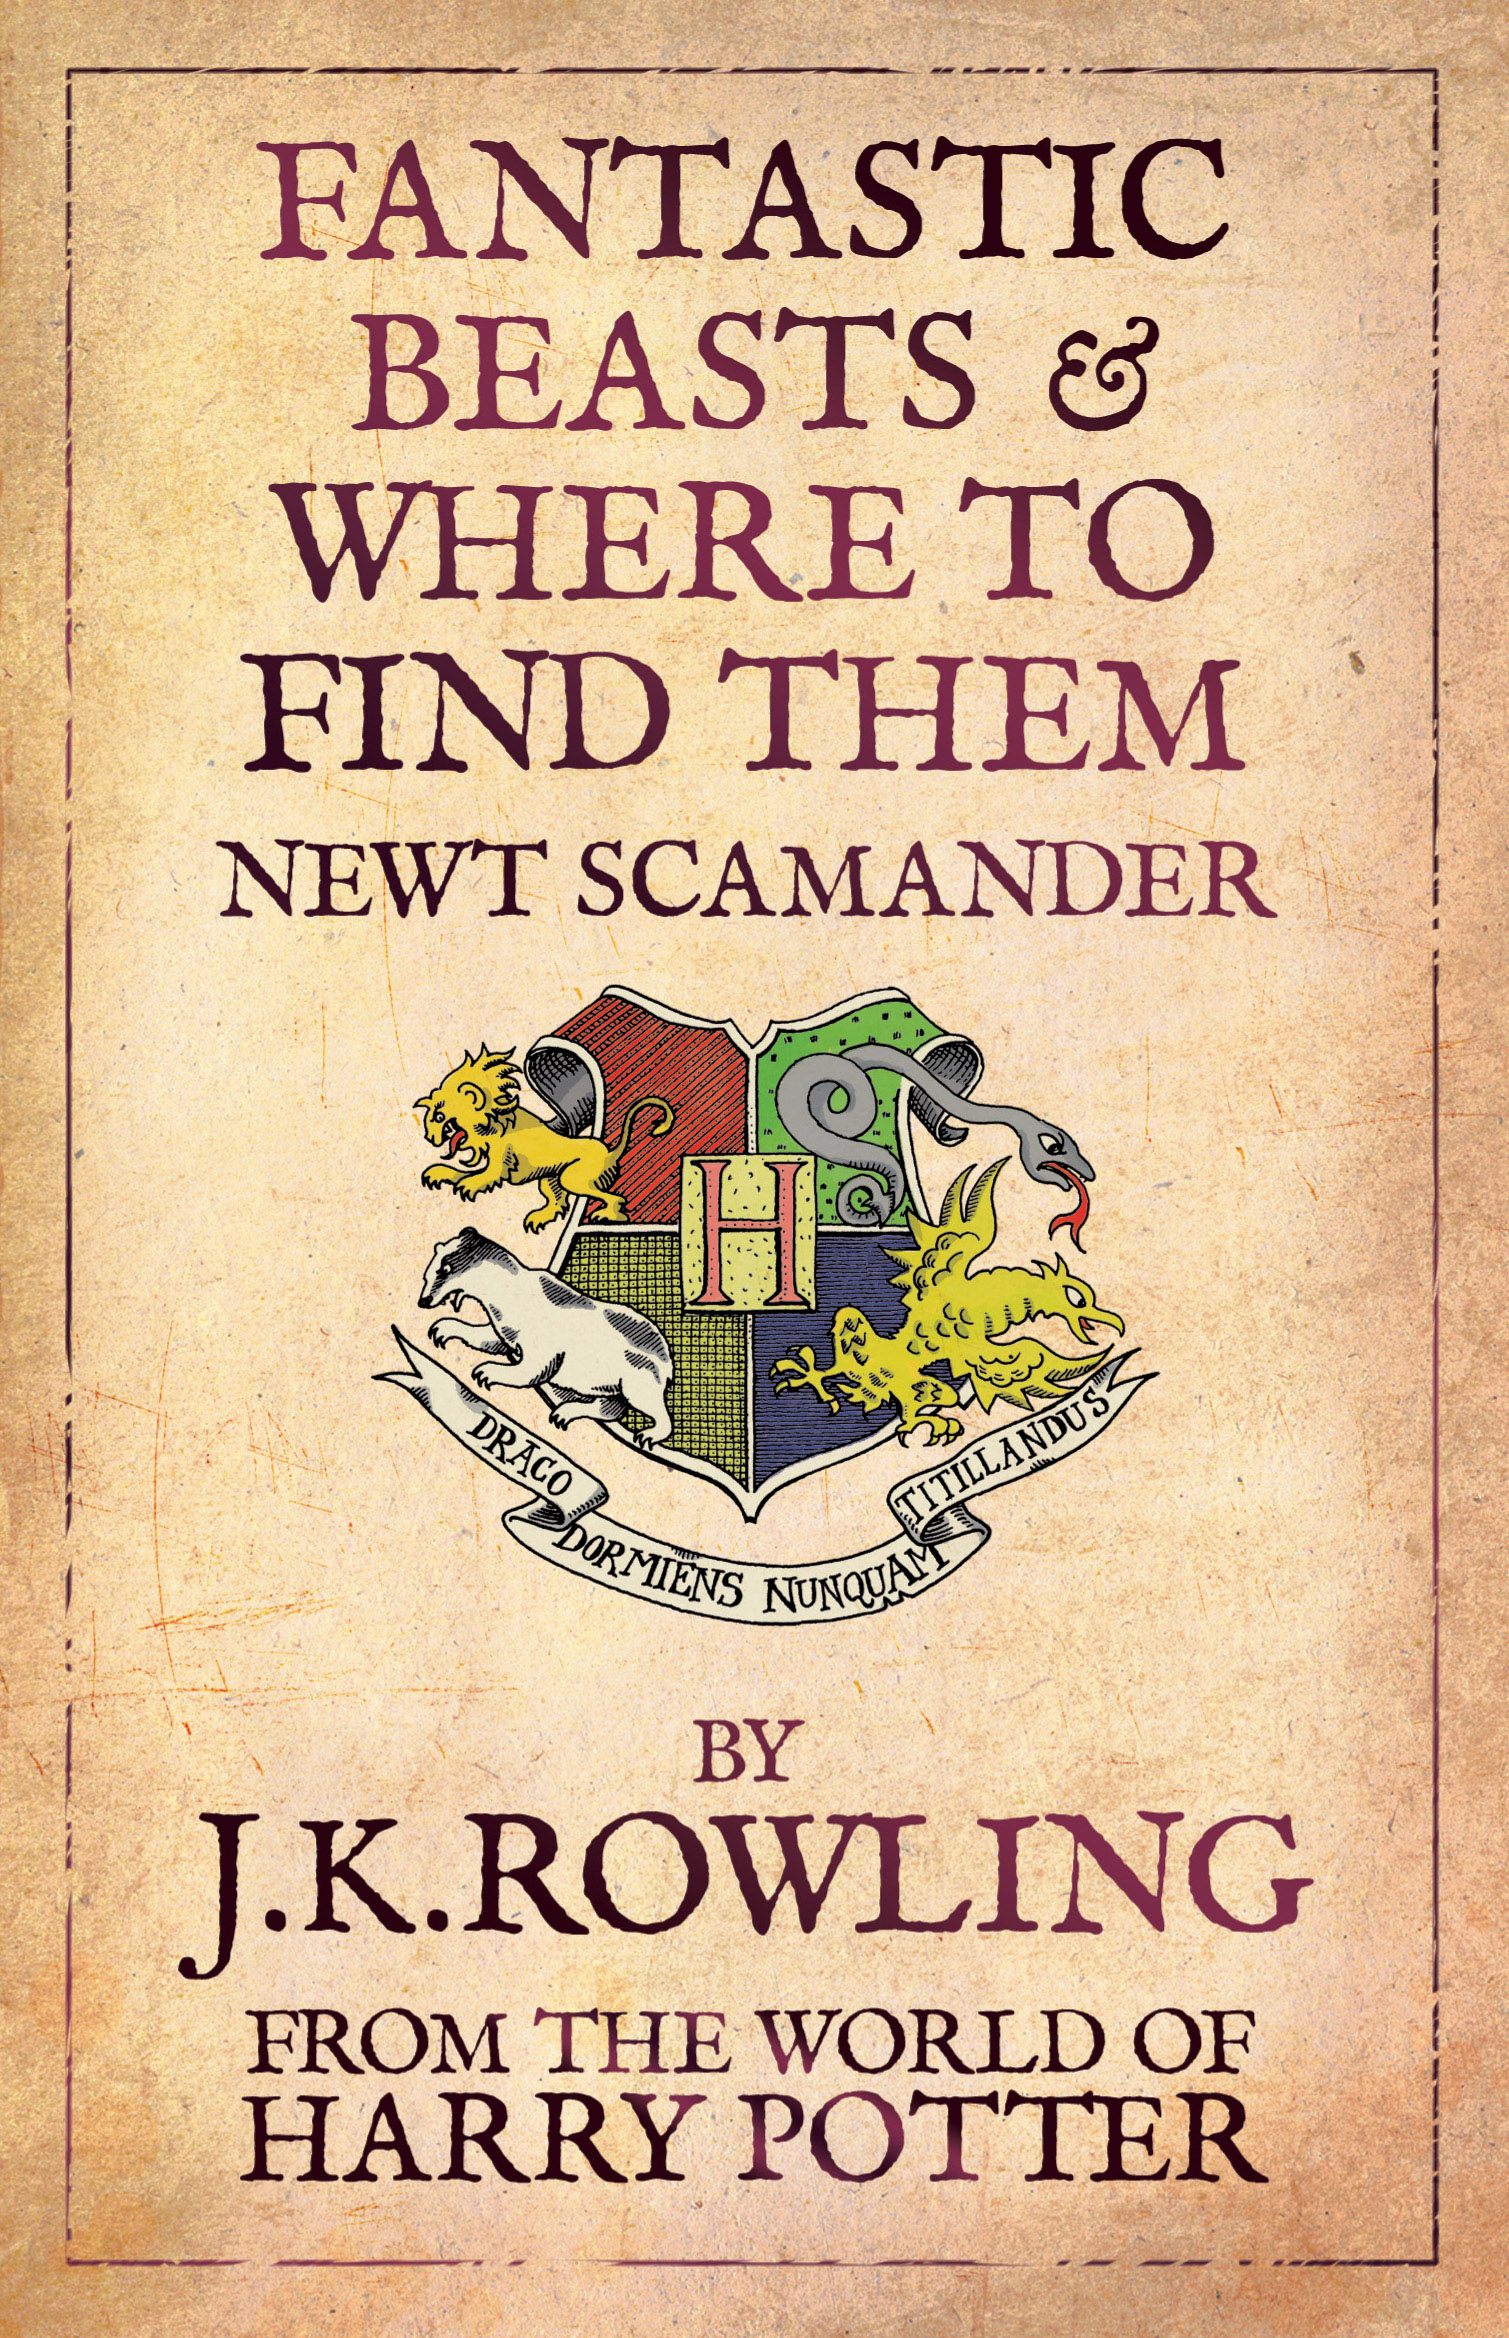 Fantastic Beasts & Where to Find Them by J.K. Rowling, ISBN: 9781408803011